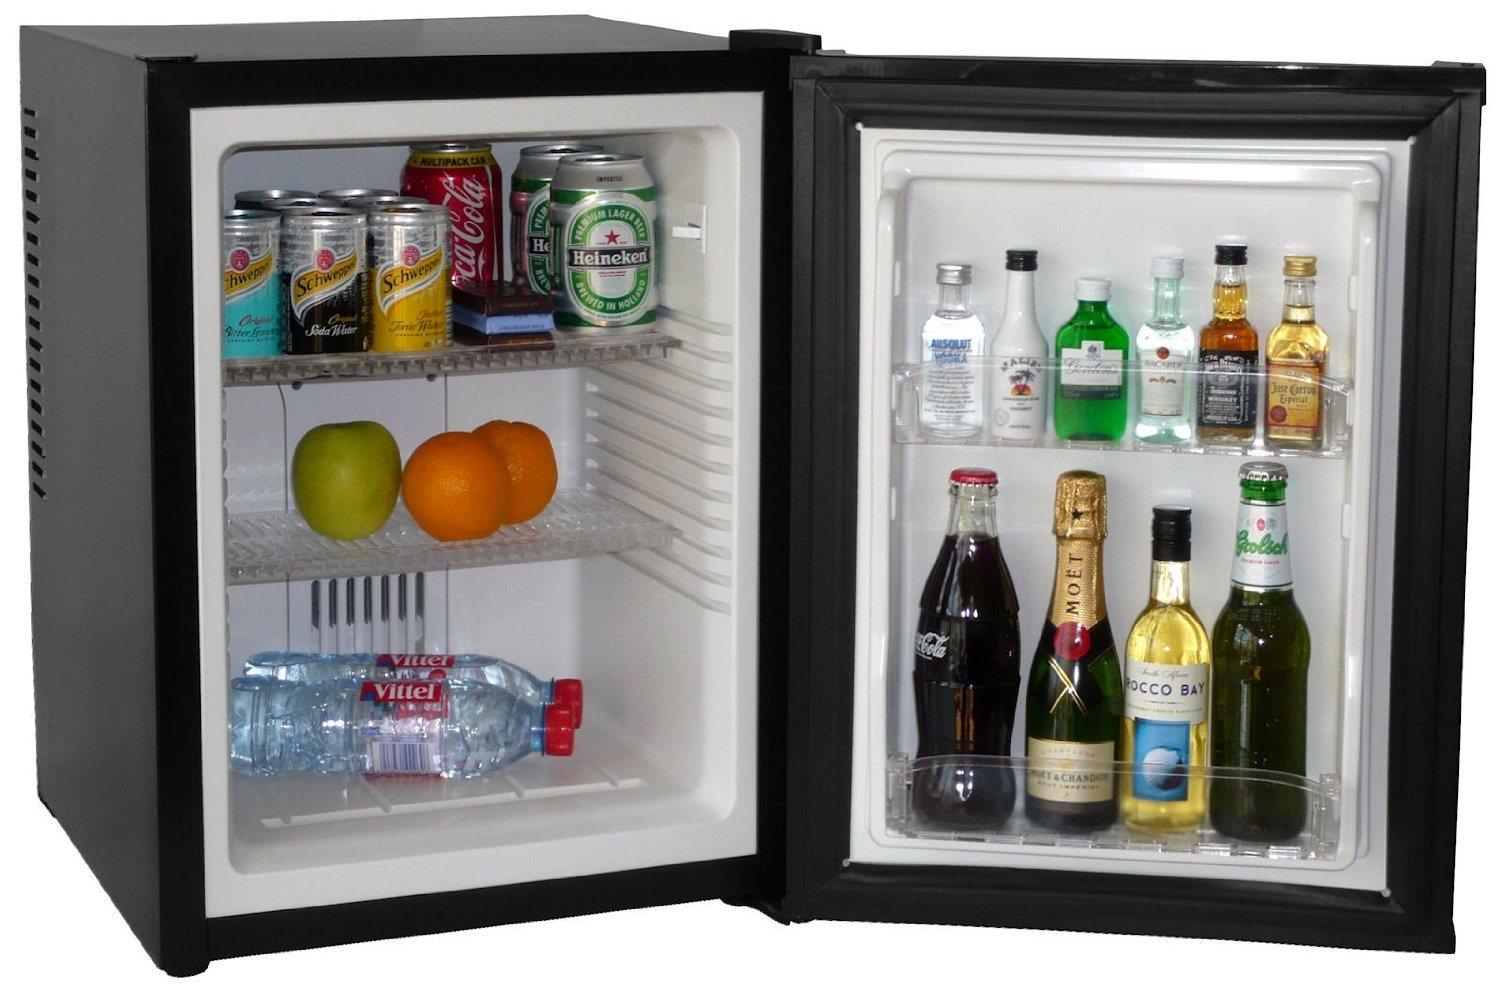 New Refrigerator Price Hot Item Orbita New High Quality Reasonable Price Hotel Absorption Minibar Fridge Refrigerator